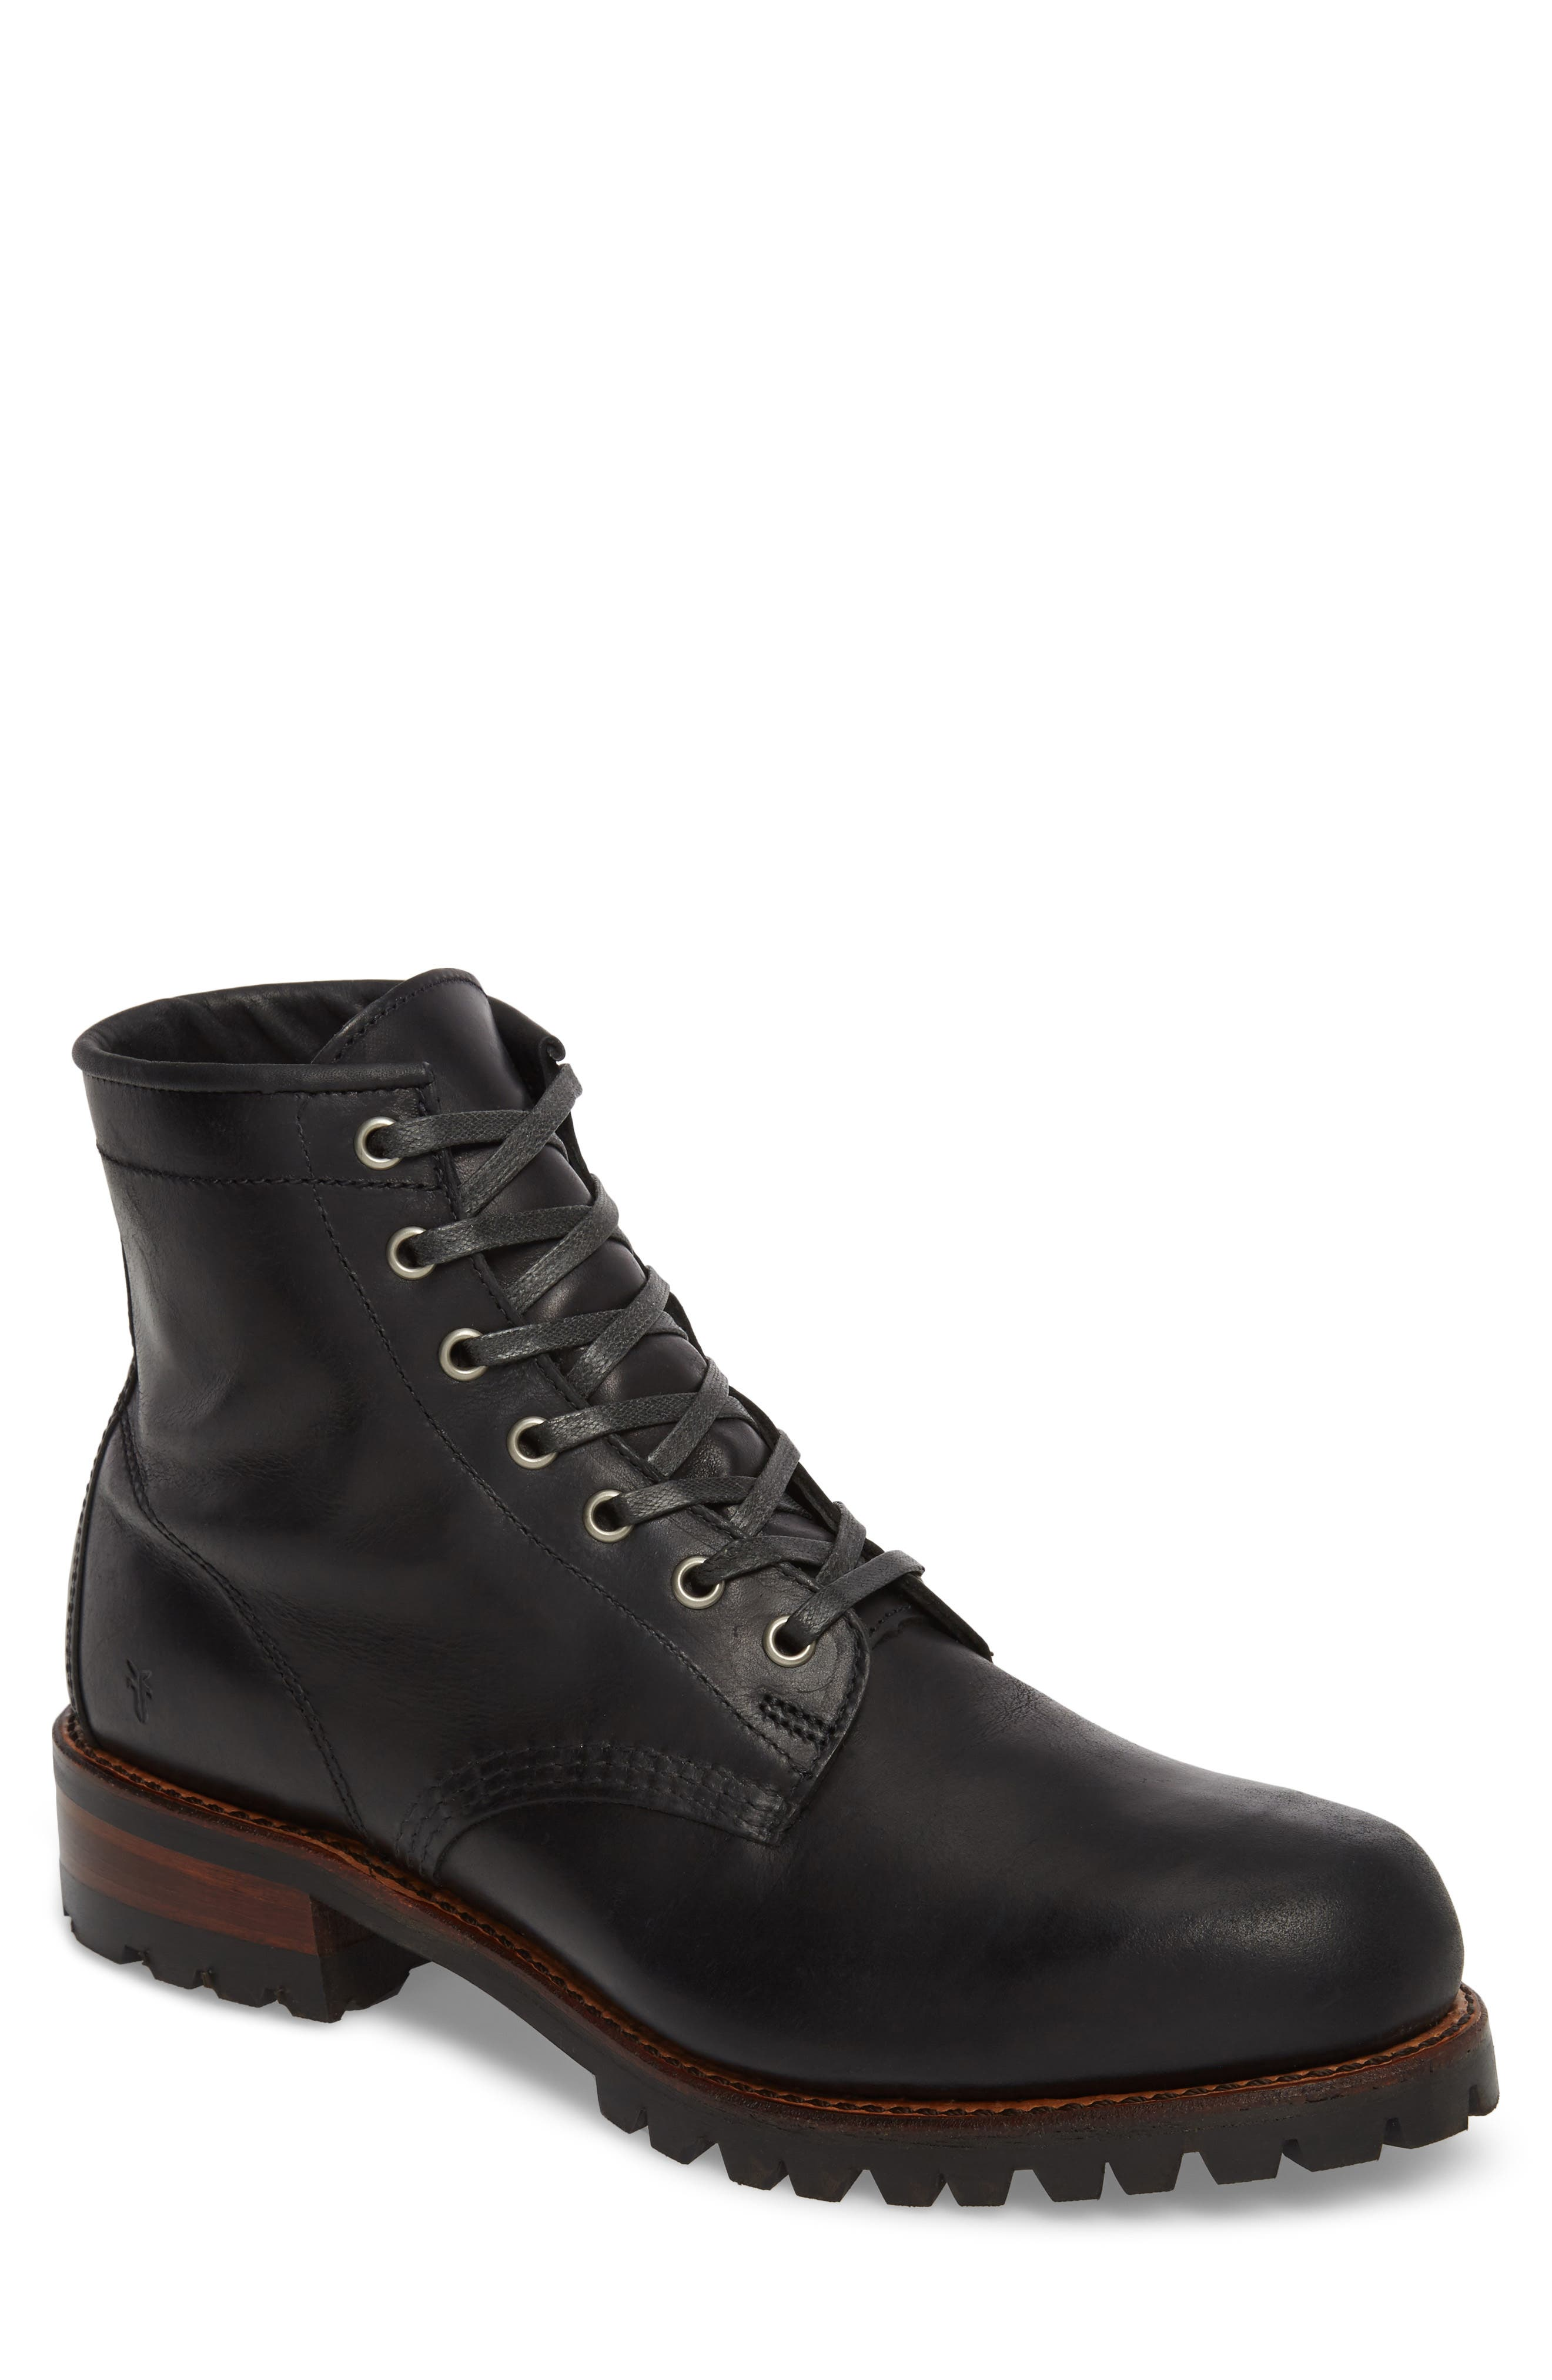 Addison Lace-Up Boot,                             Main thumbnail 1, color,                             001